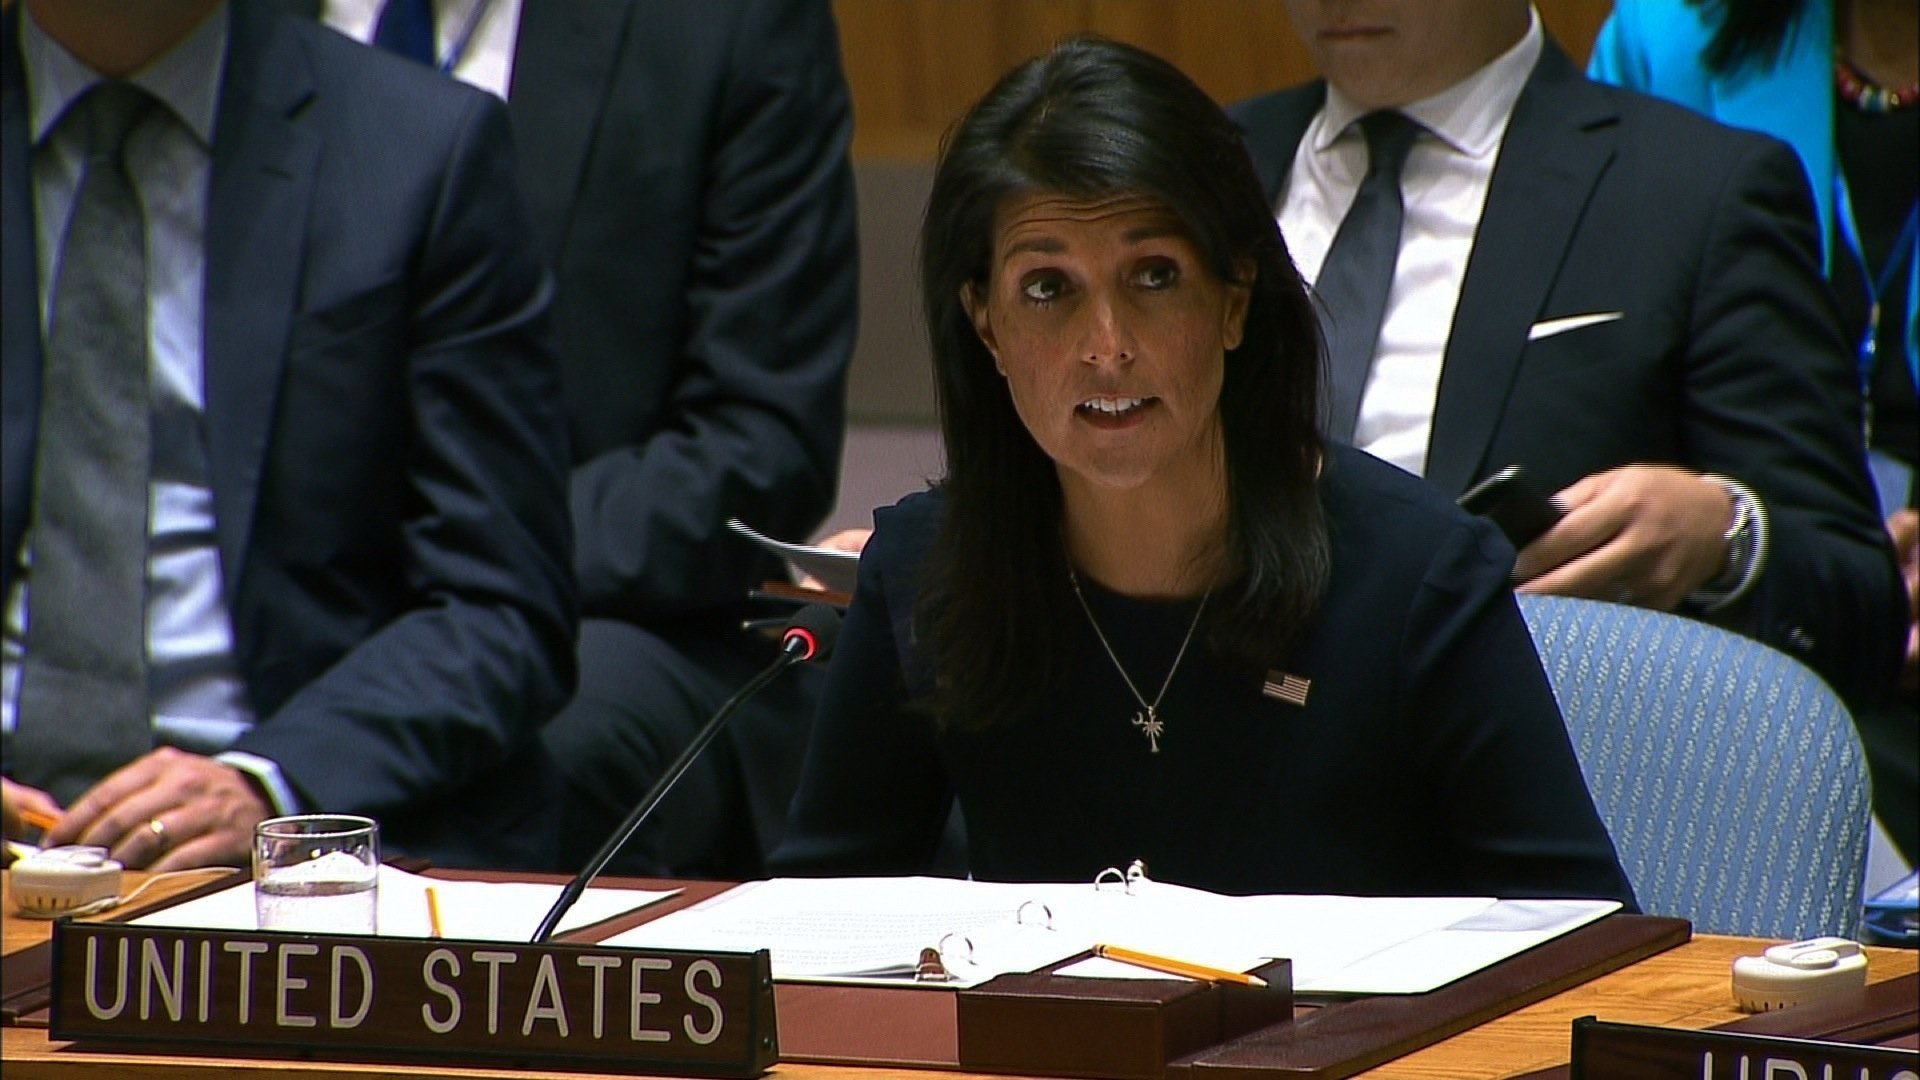 North Korea threatens U.S. over Haley's 'hysteric fit' at UN